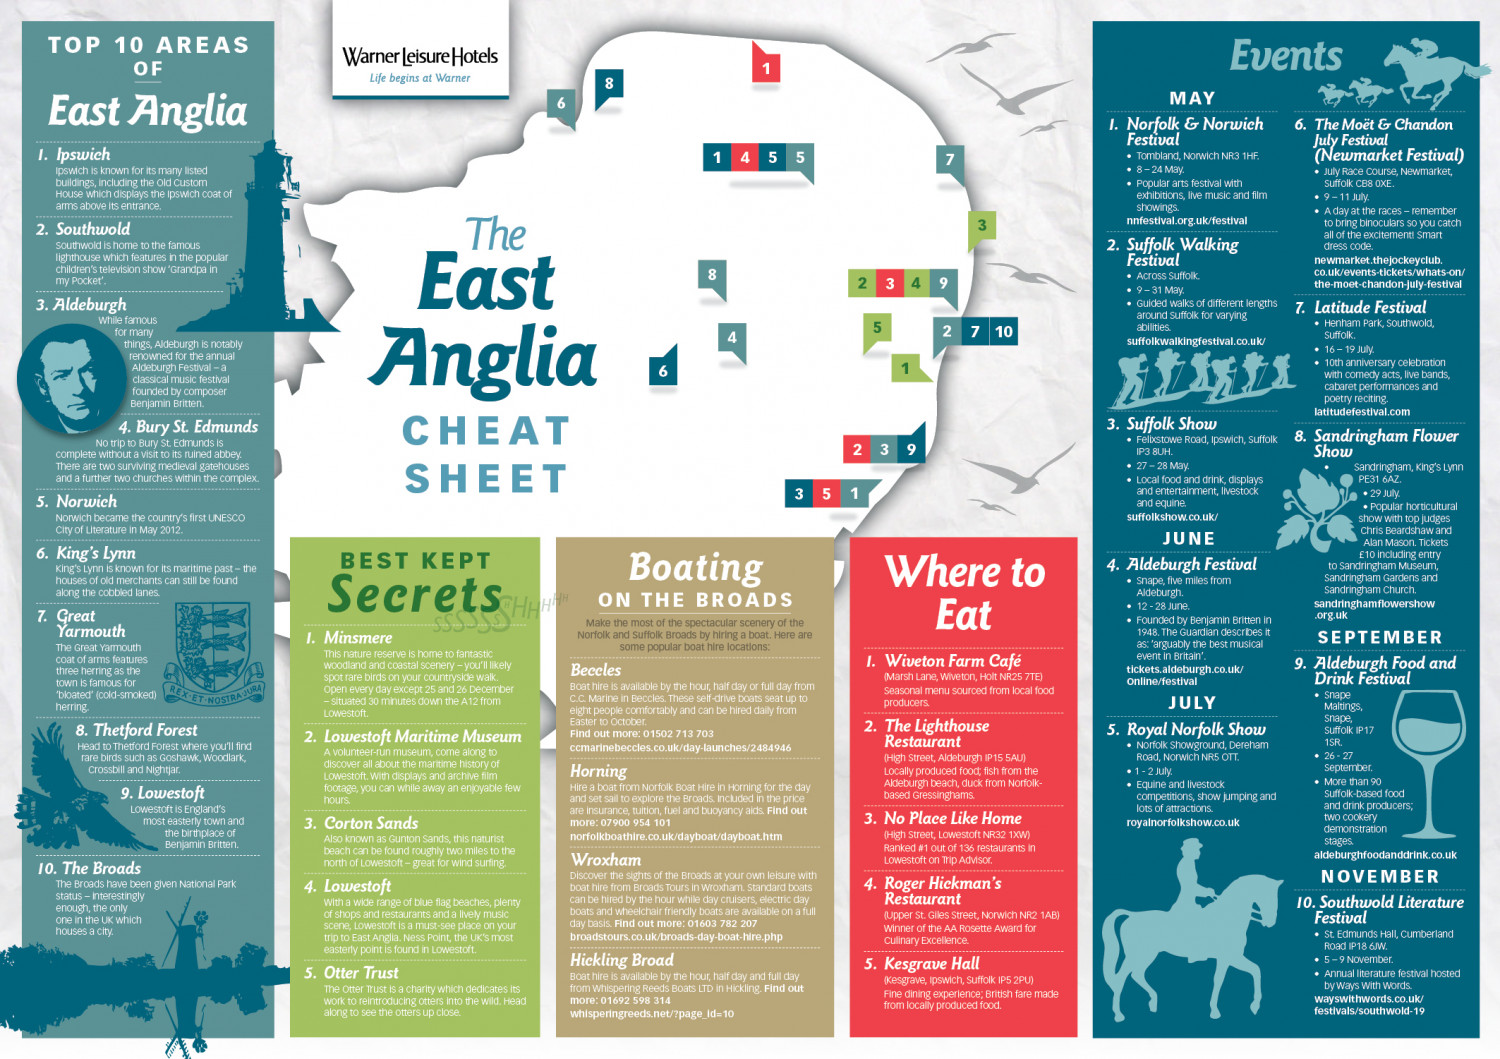 East Anglia Cheat Sheet Infographic